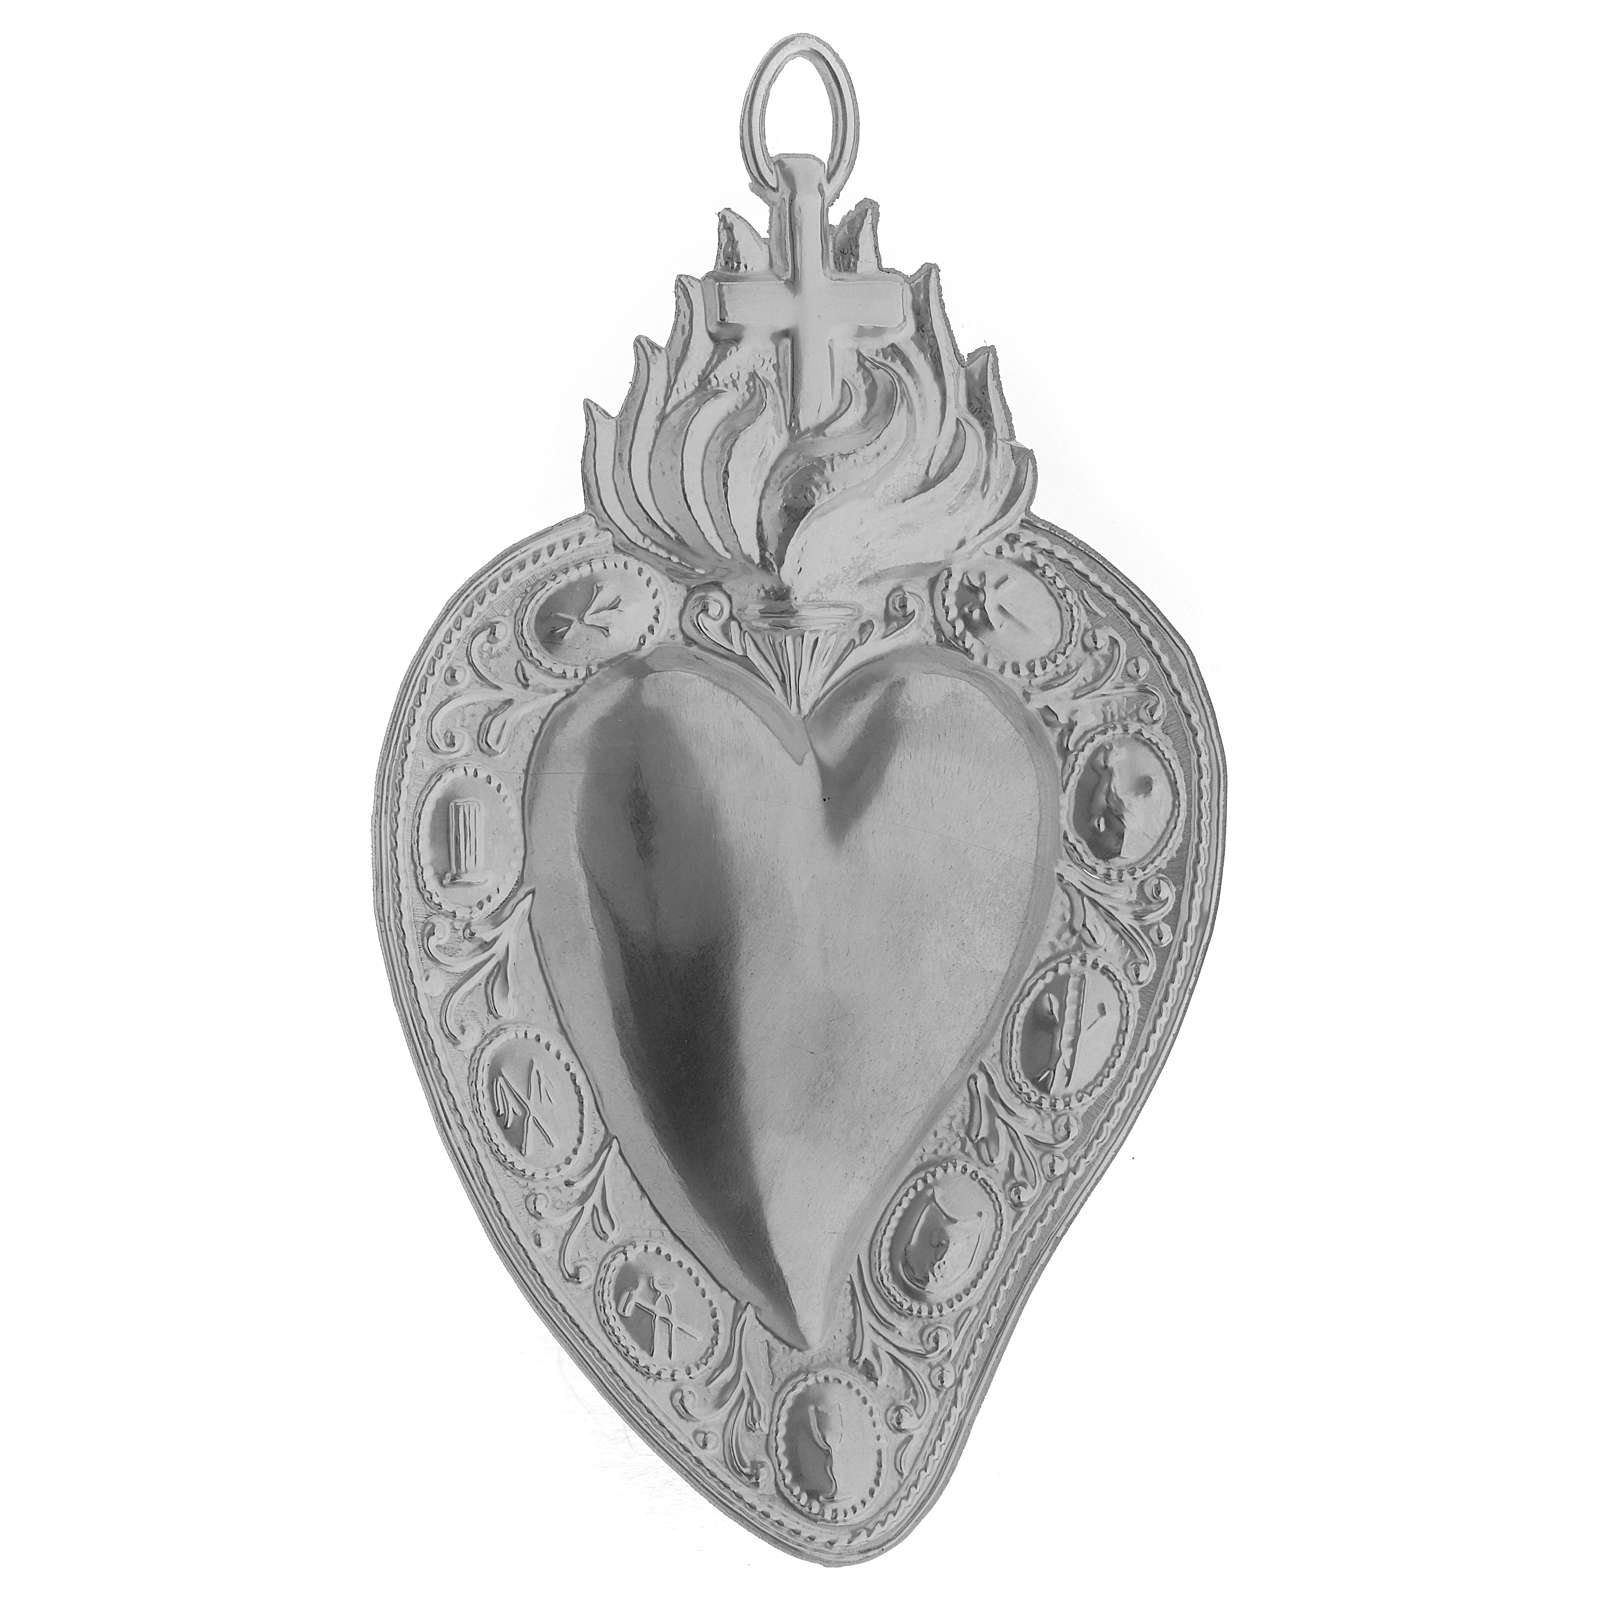 Ex-voto, Votive heart with cross and flame 13.5x8cm 3